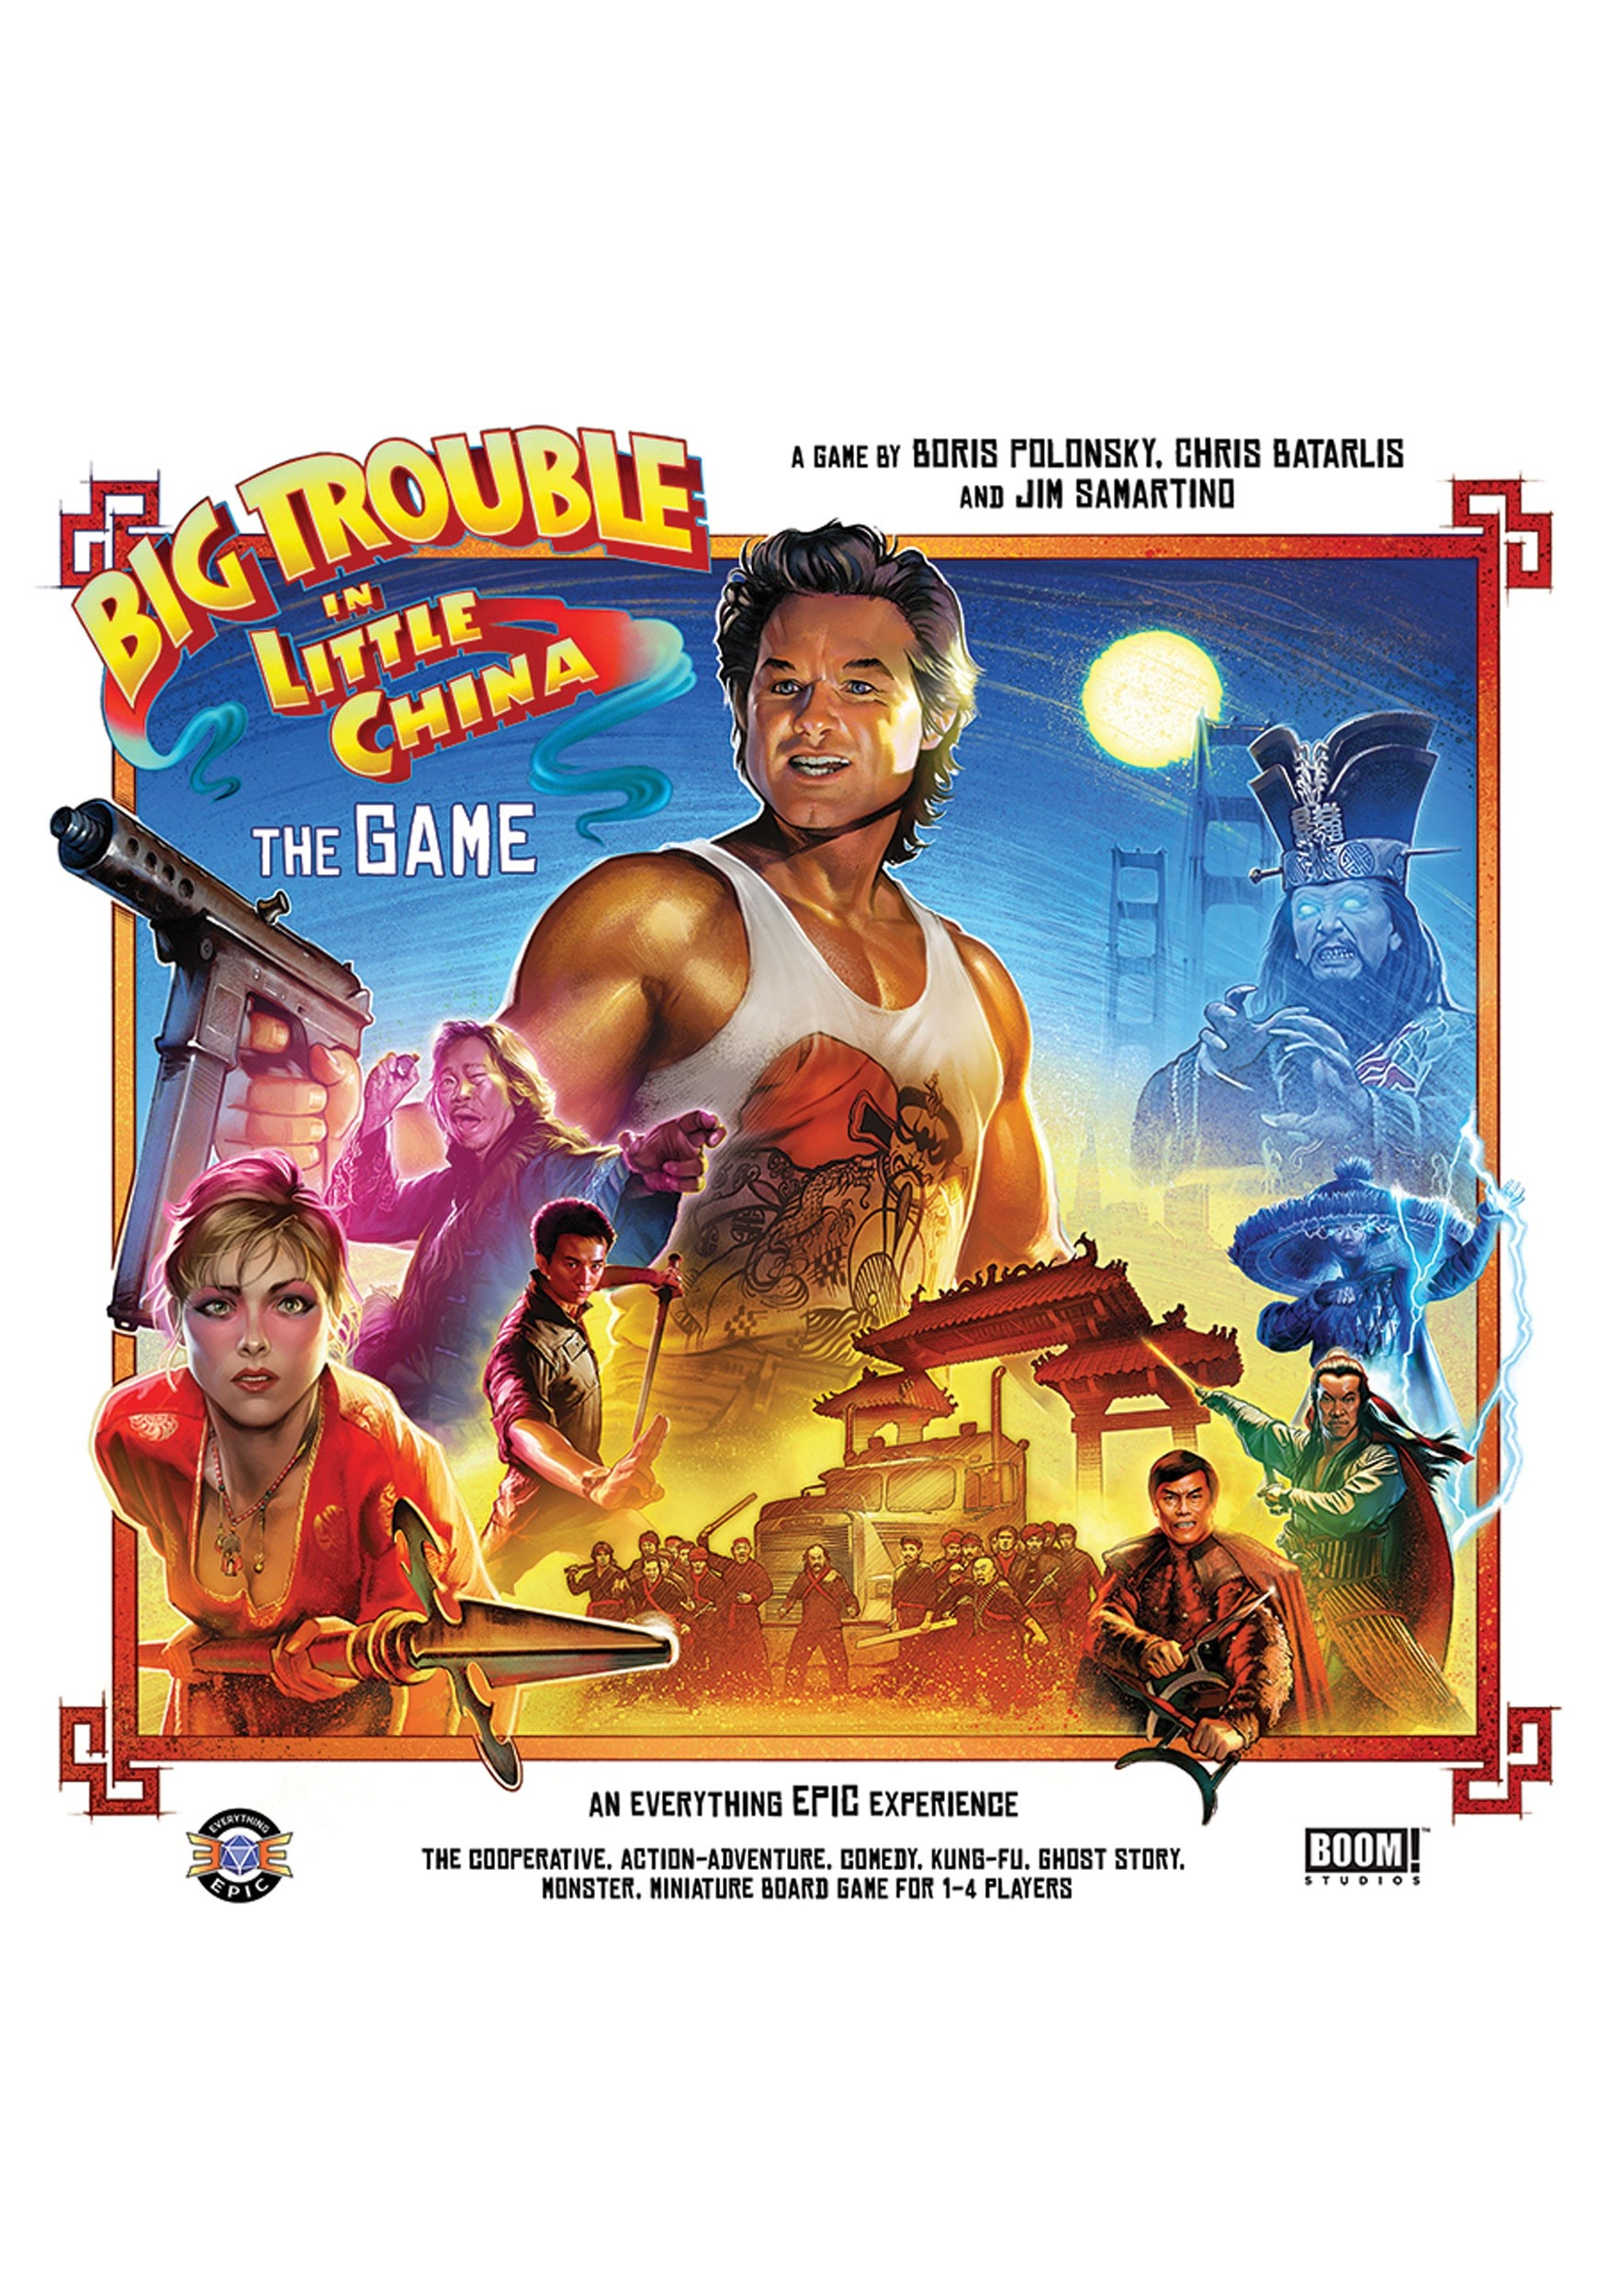 Big_Trouble_in_Little_China_The_Game